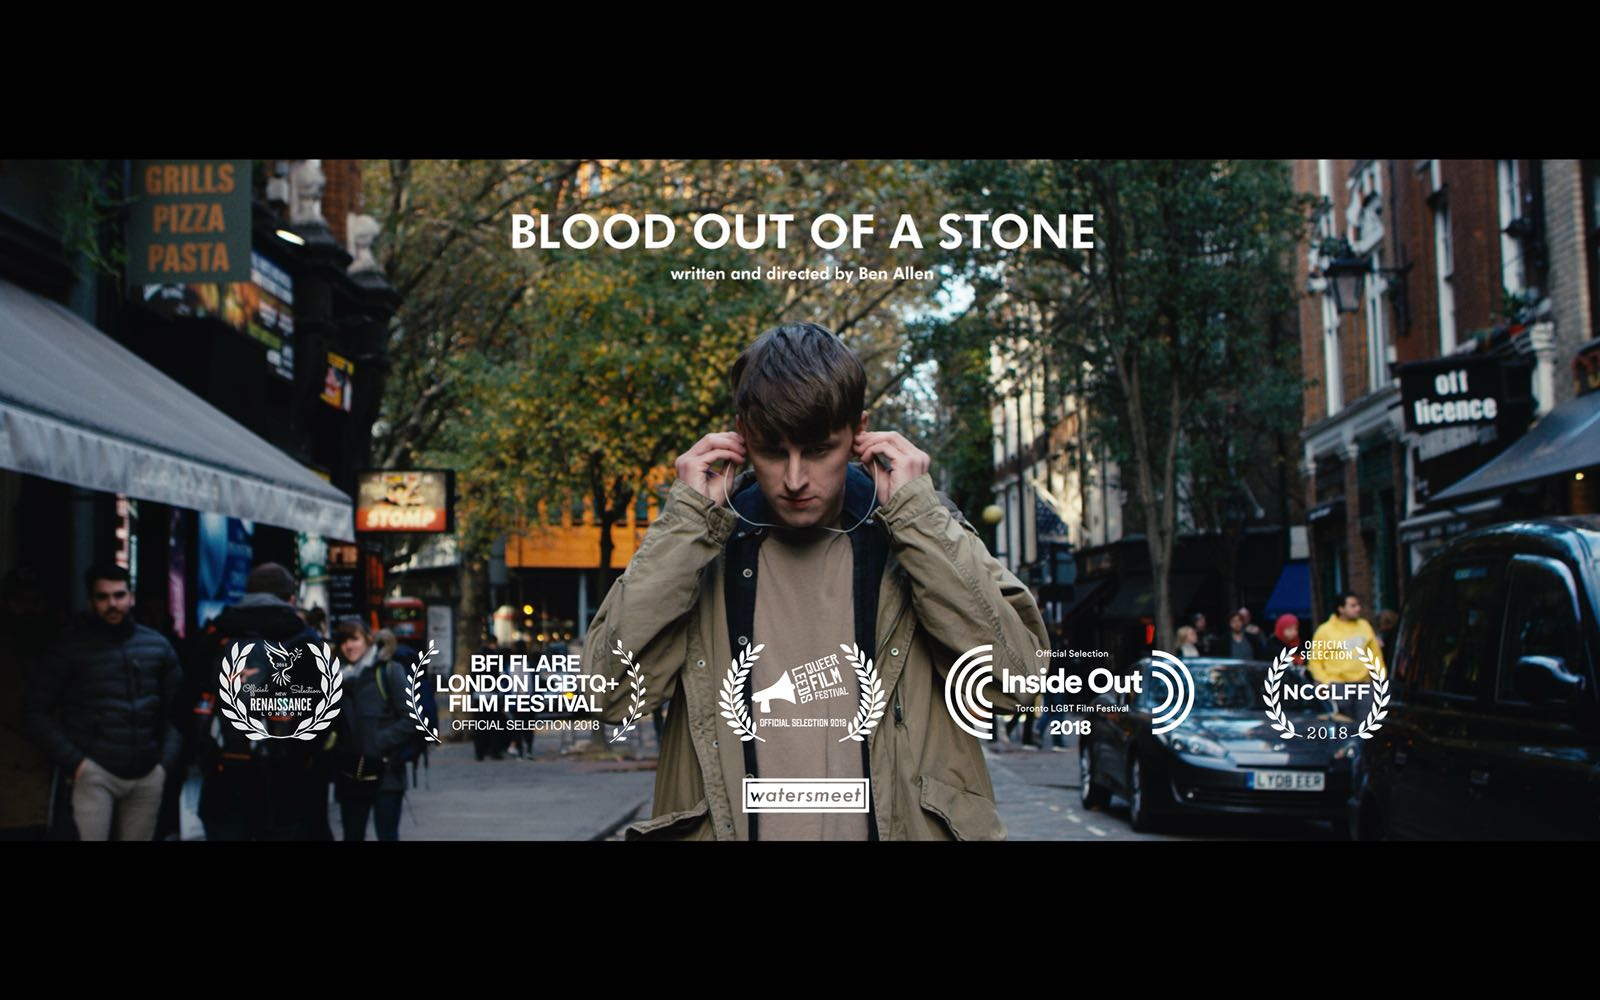 Blood Out of a Stone - Directed by Ben Allen   A young man is forced out of his comfort zone when he goes on an unconventional date. A multi-award winning short film from Watersmeet Productions.